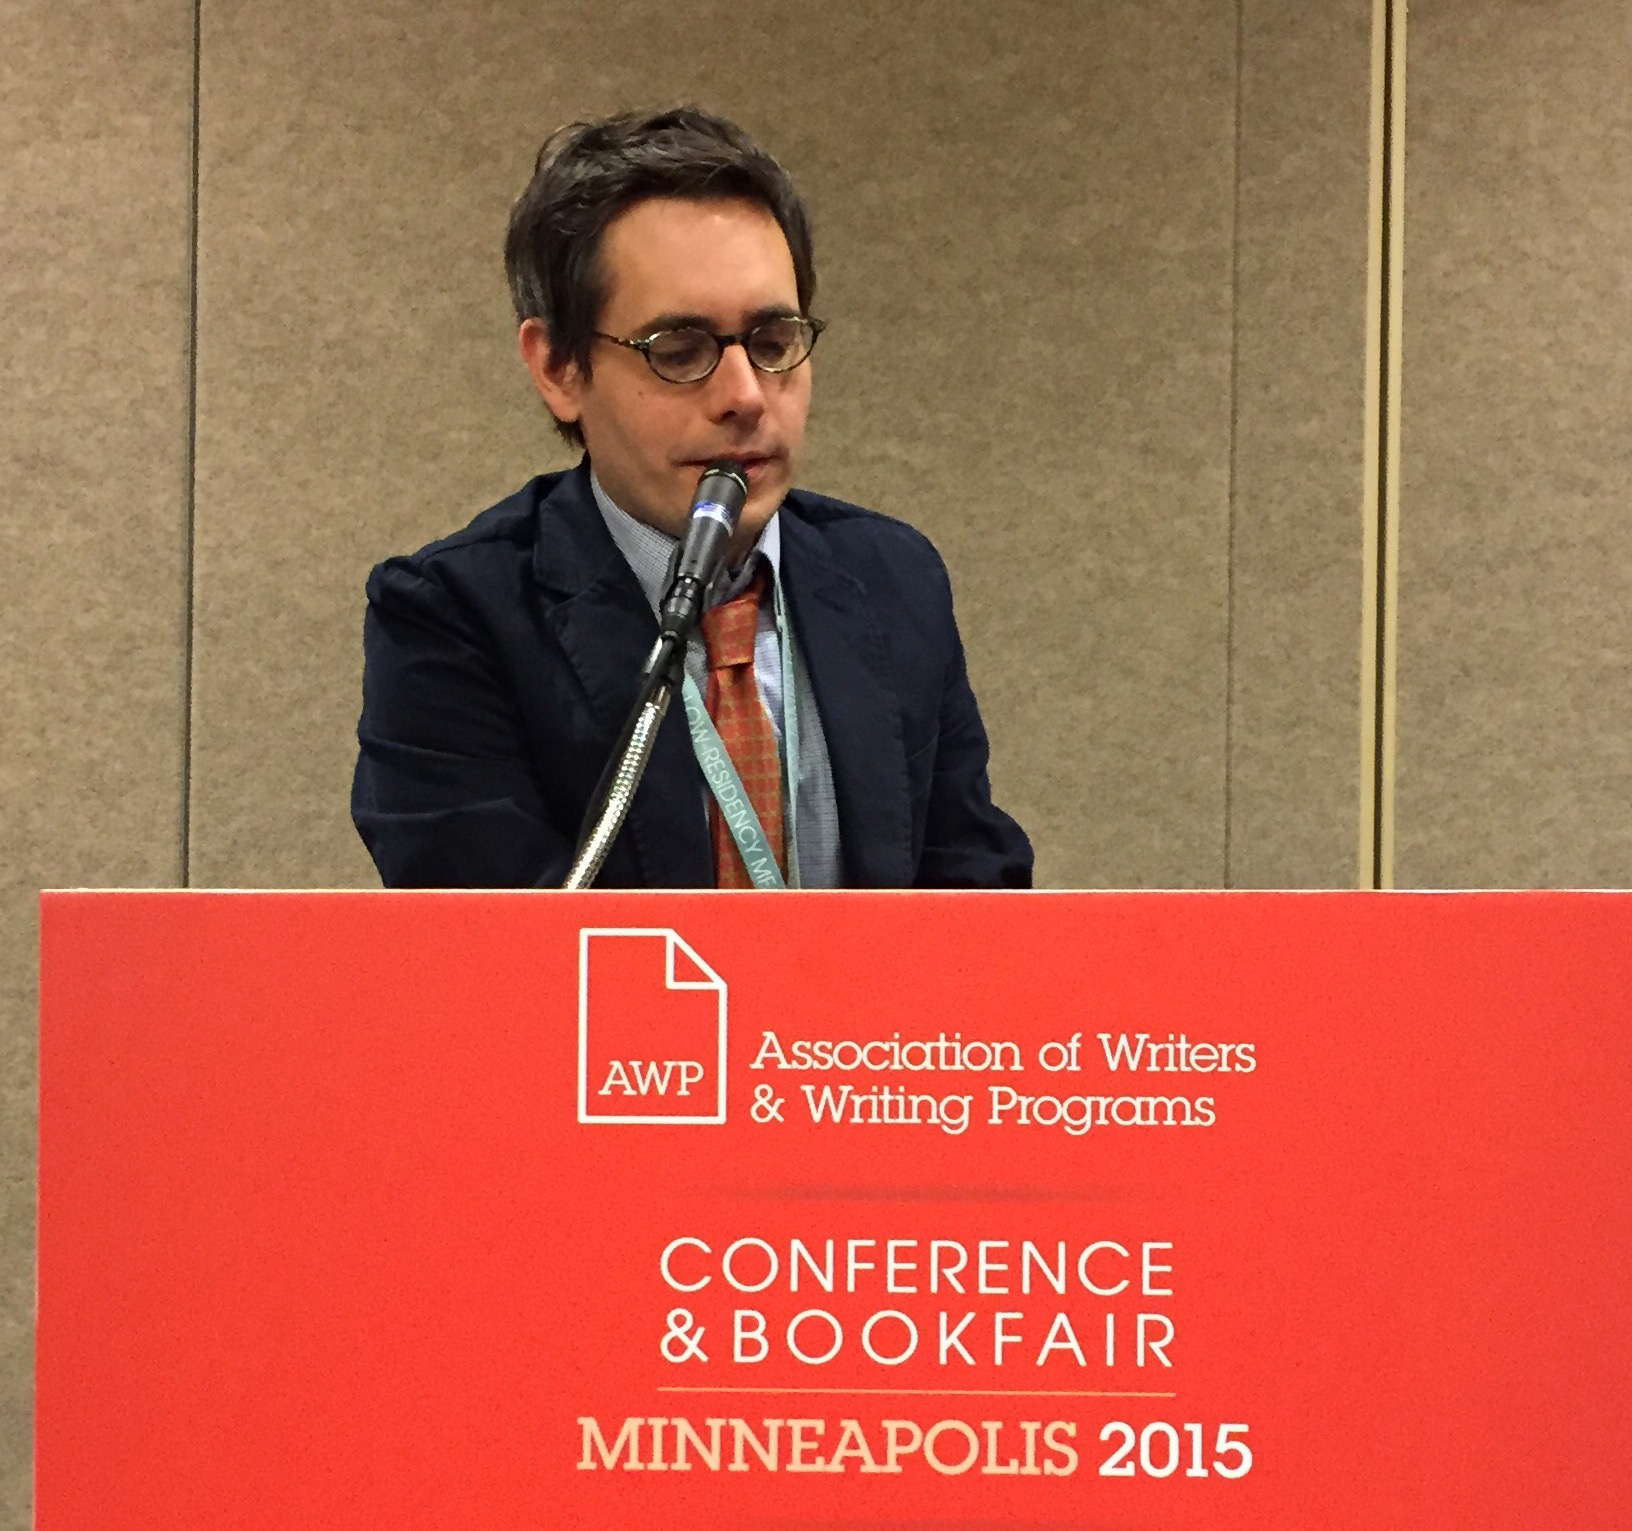 Acquisitions editor Erik Anderson of the University of Minnesota Press